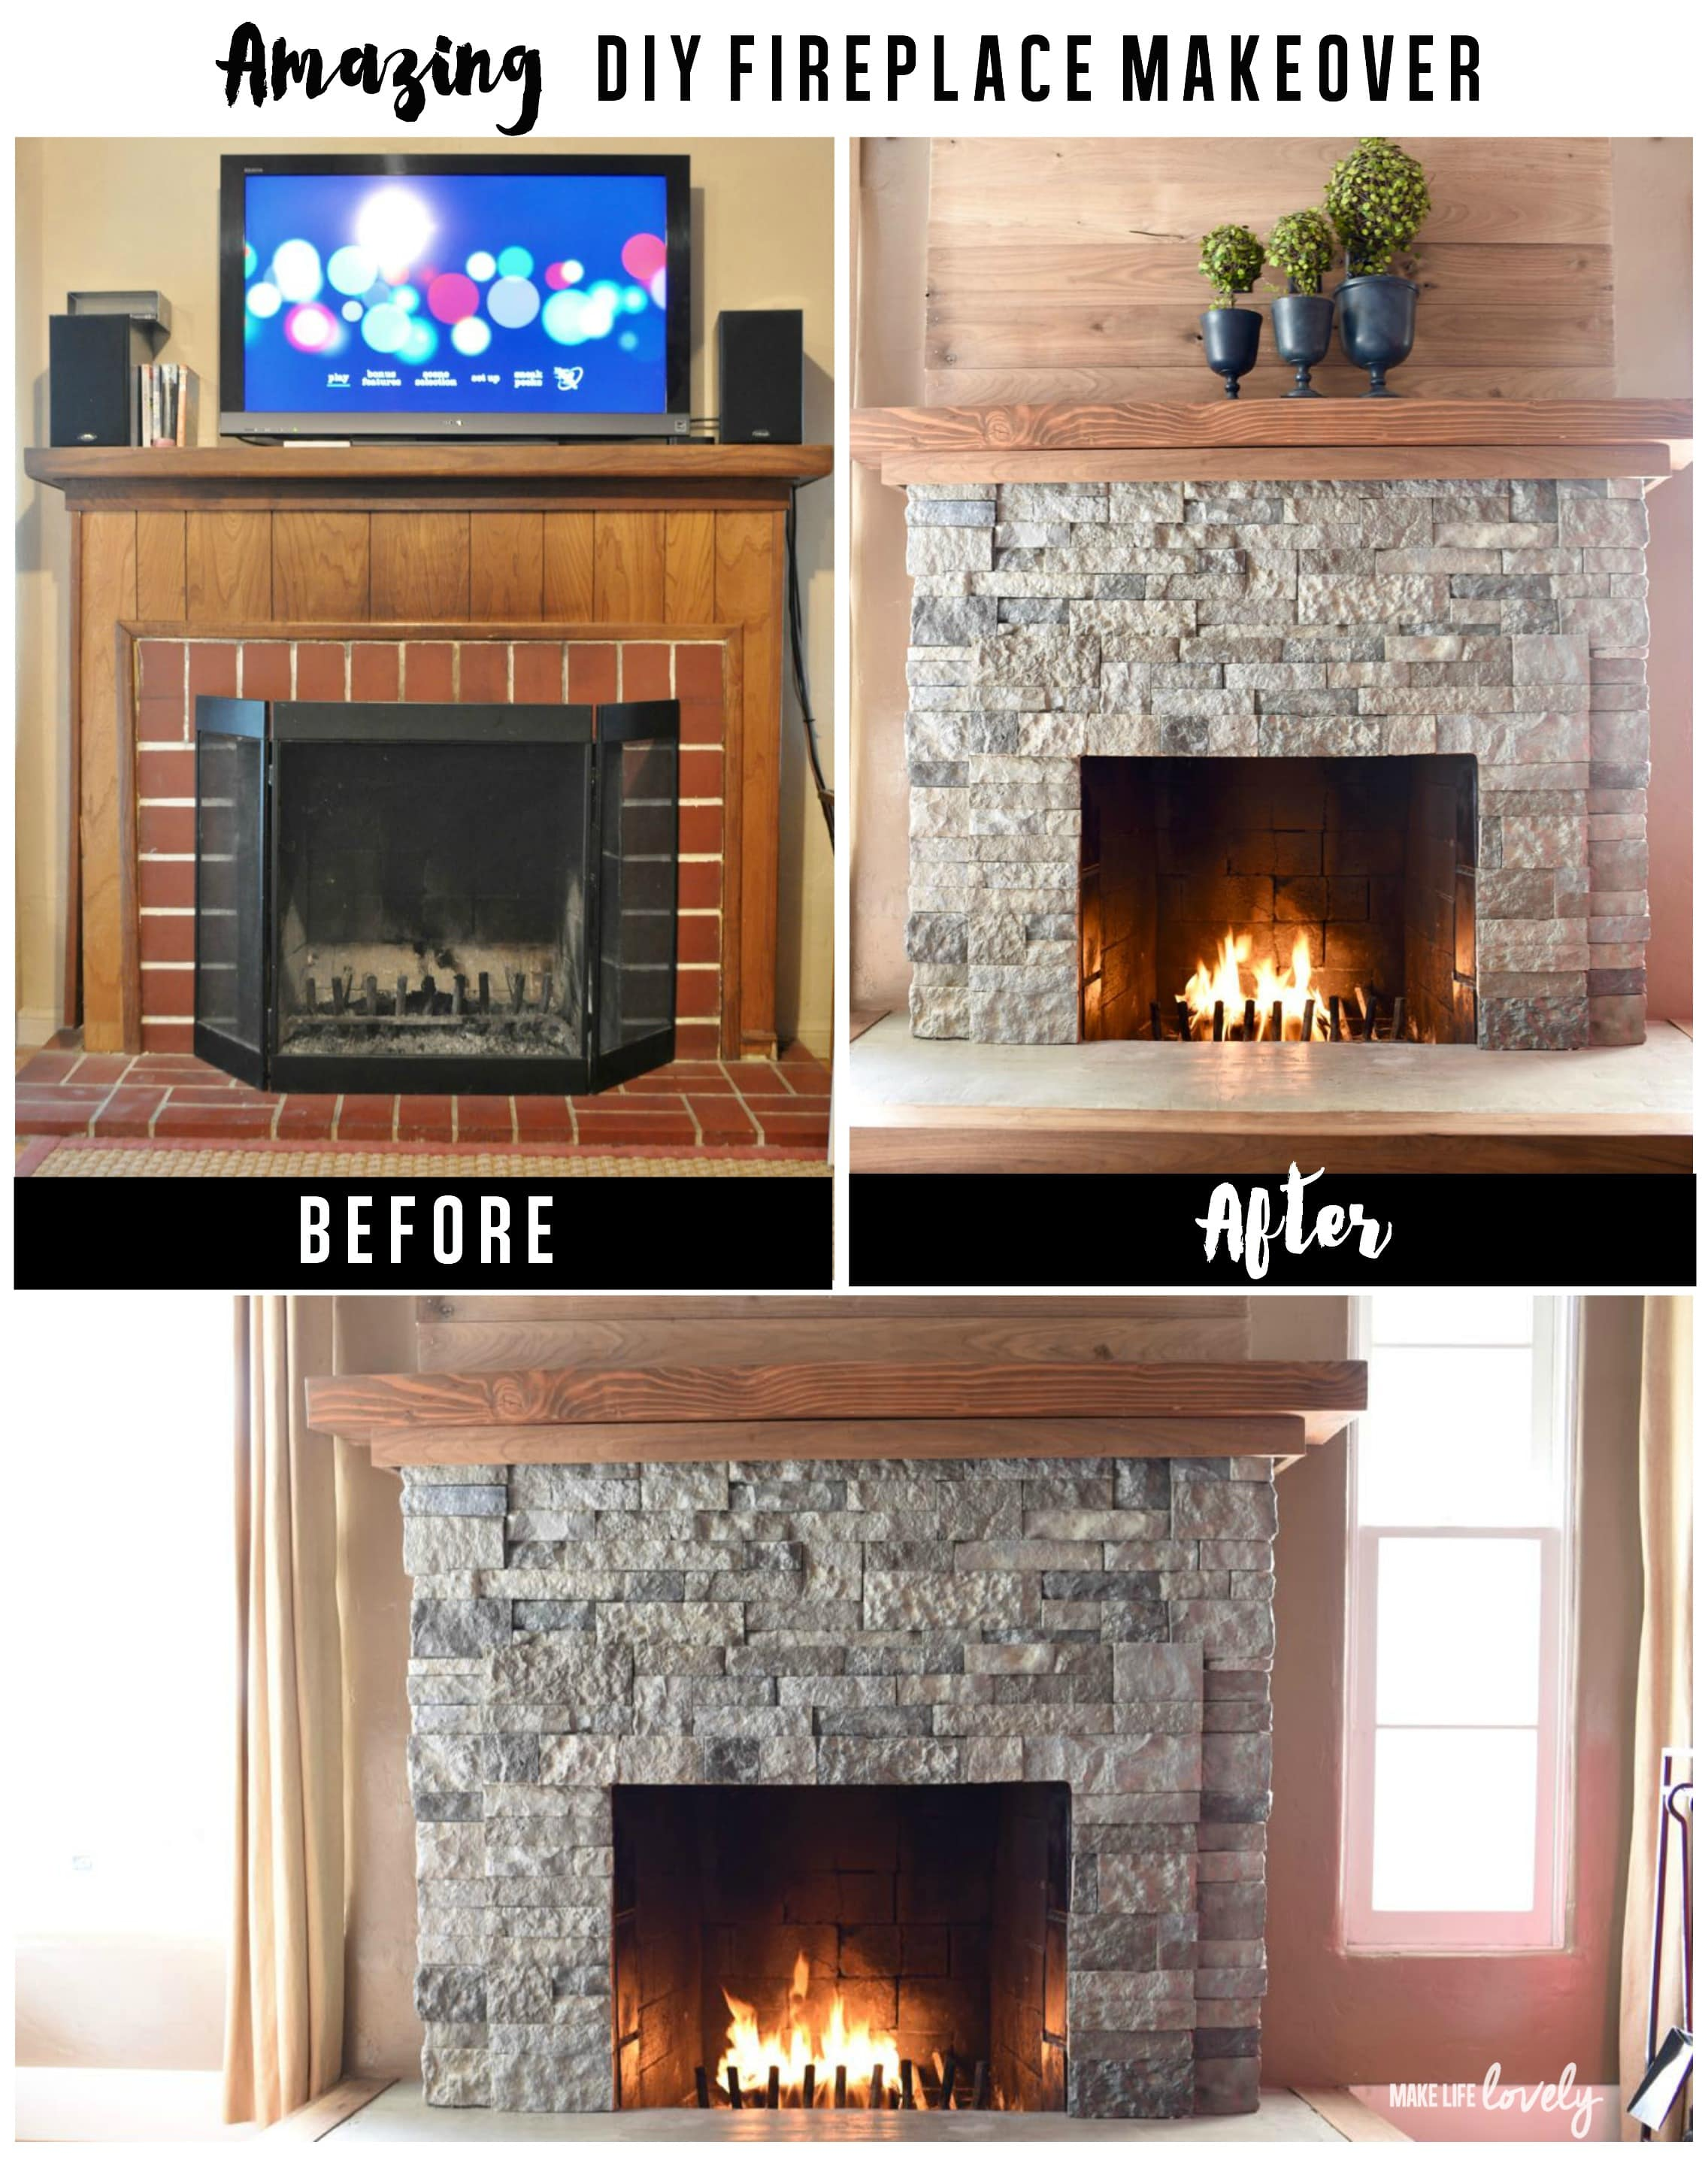 flatfireplace drywall case masonry fireplaces wood fireplace resurfacing photos study to restructuring casestudy gas stone ottawa from techniques flat services cultured